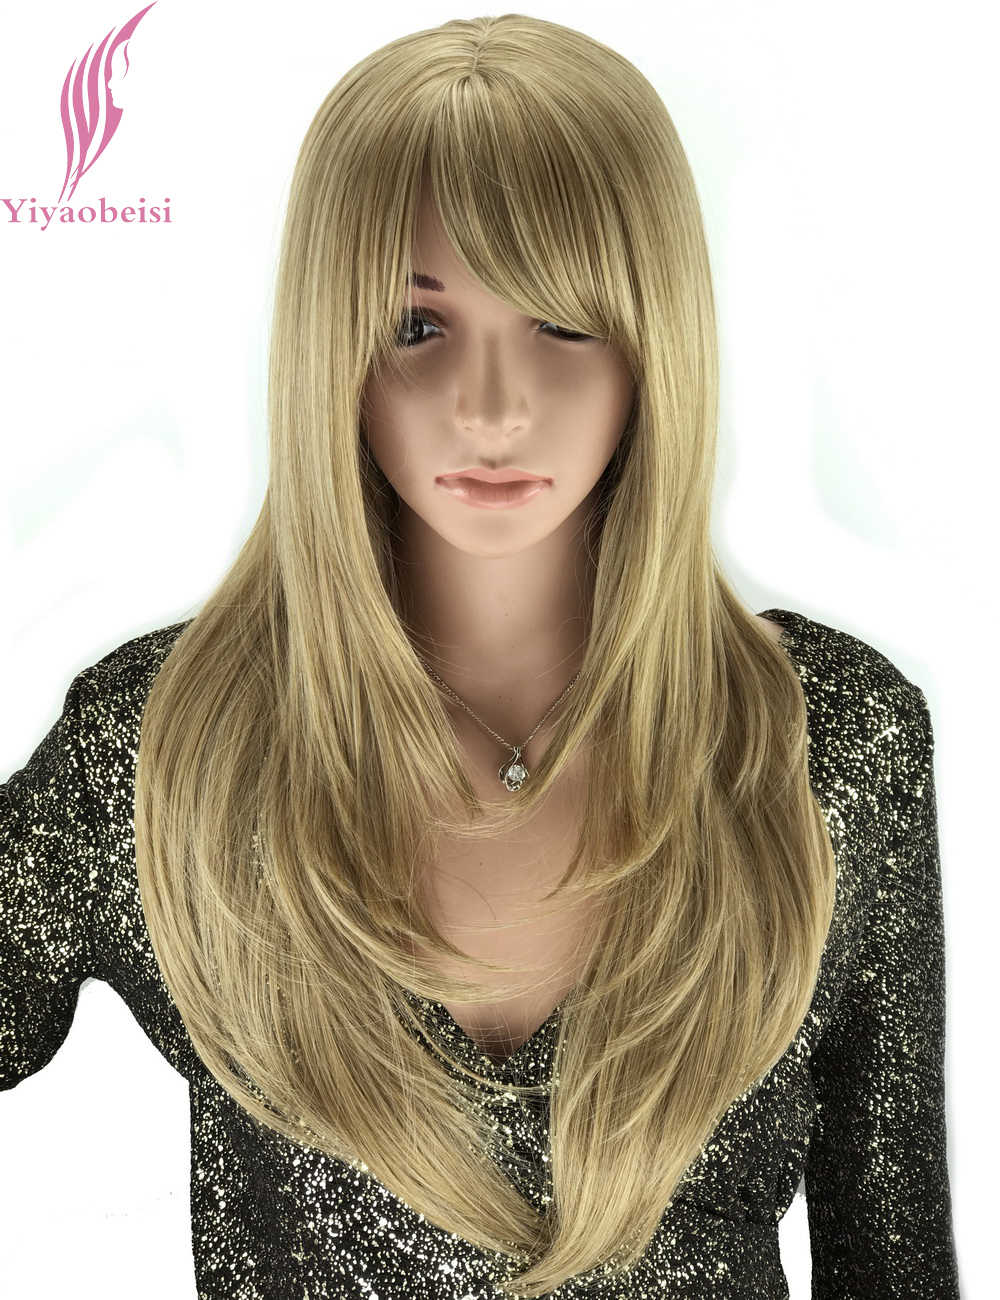 Yiyaobess 50cm European Natural Long Straight Wig Bangs Heat Resistant Synthetic Hair Mix Light Golden Wigs For Women